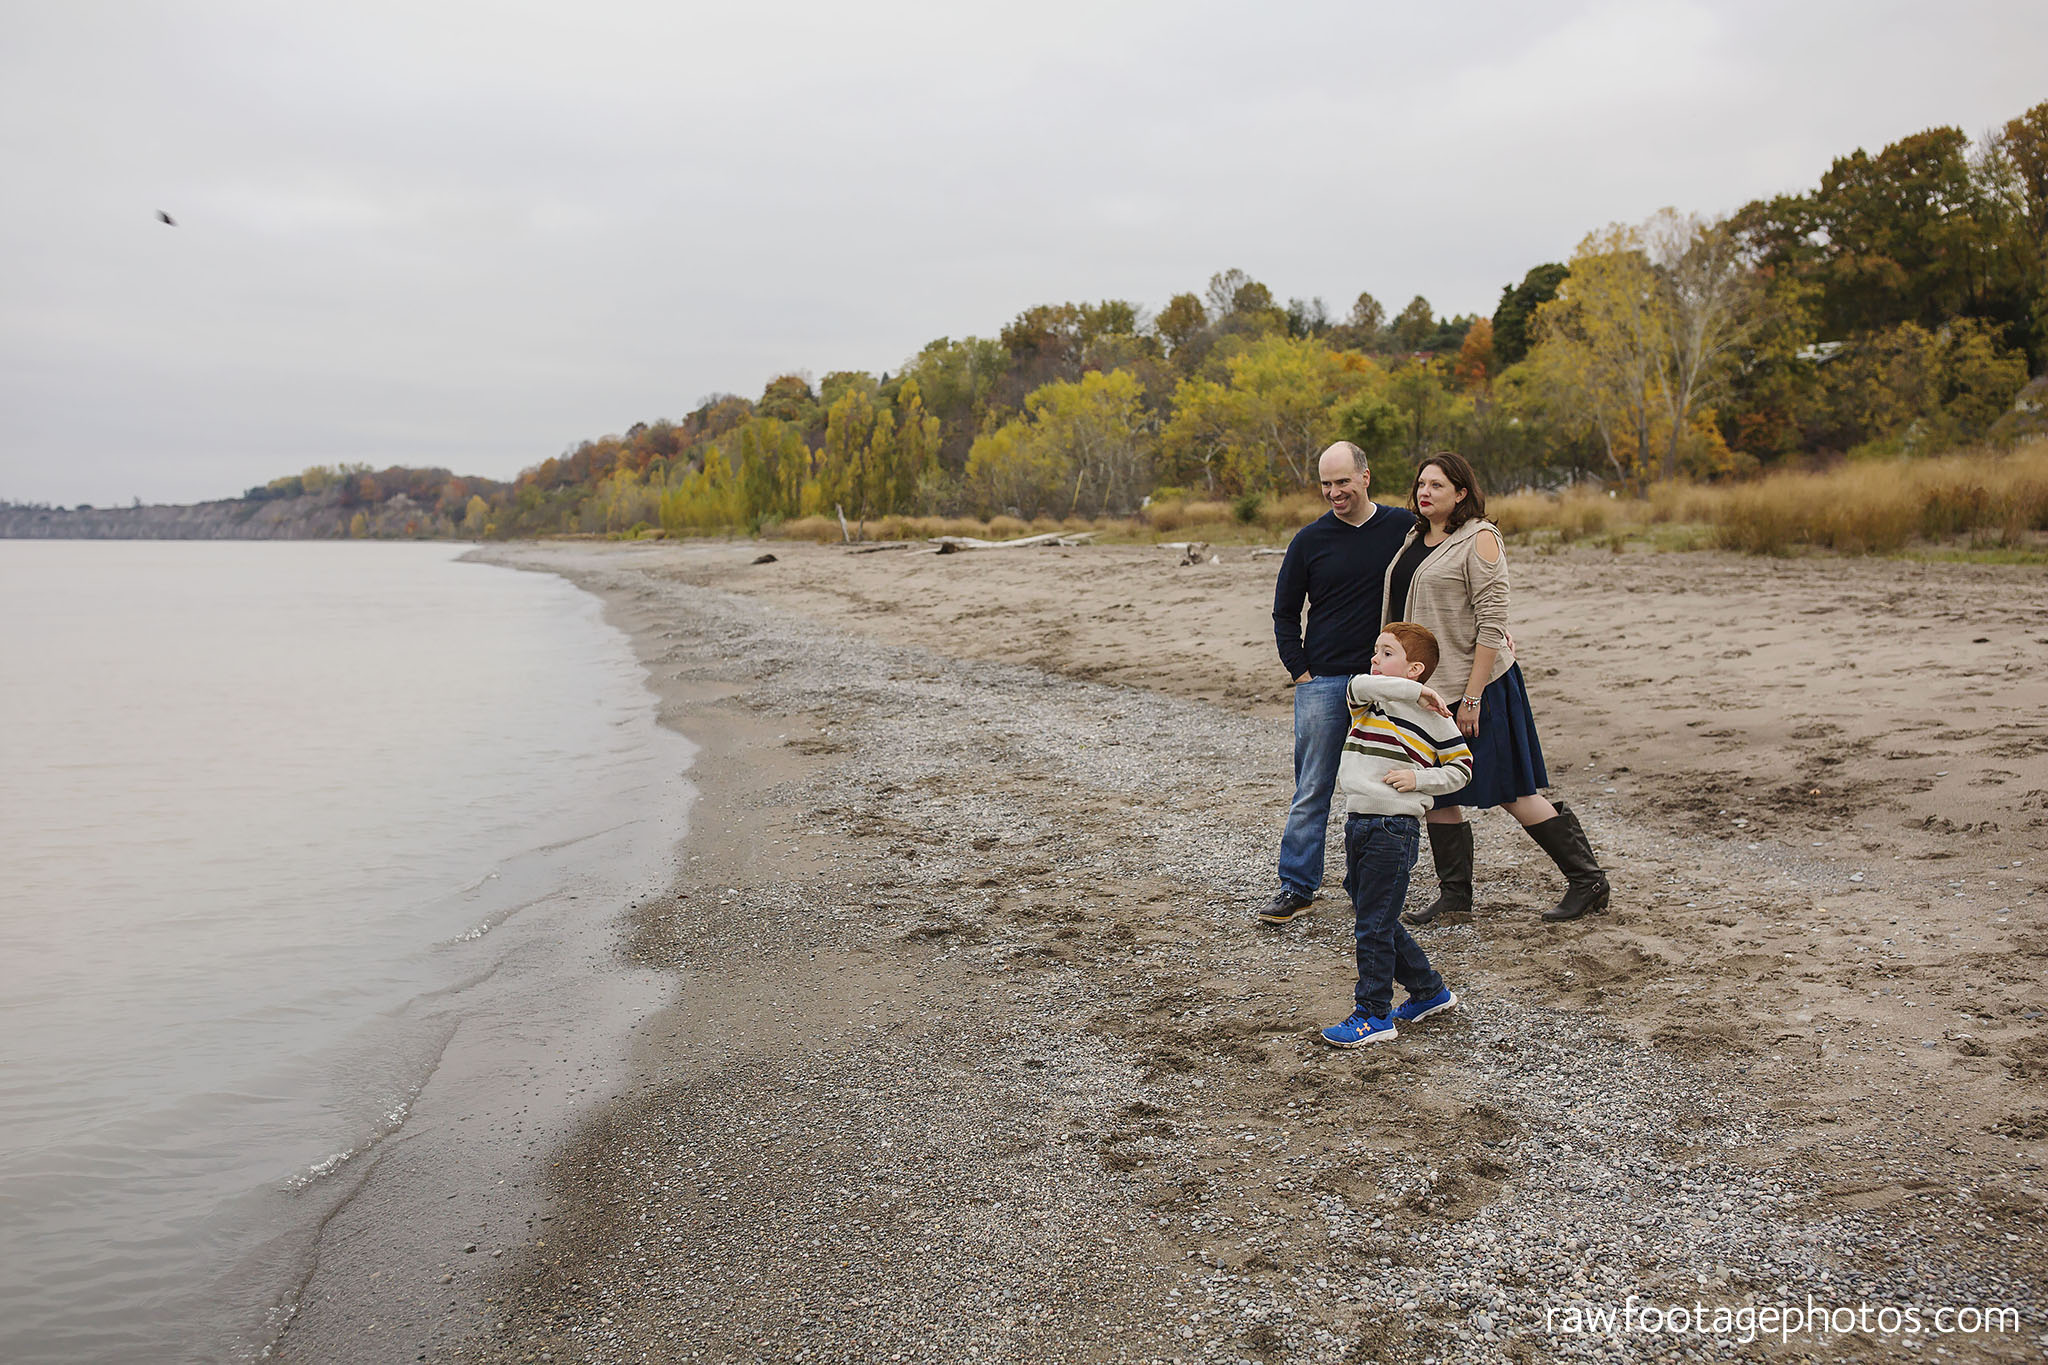 london_ontario_family_photographer-port_stanley_photography-raw_footage_photography-family_photos-beach_photos-fall_family_photos-lifestyle_family_photography-candid_photographer006.jpg